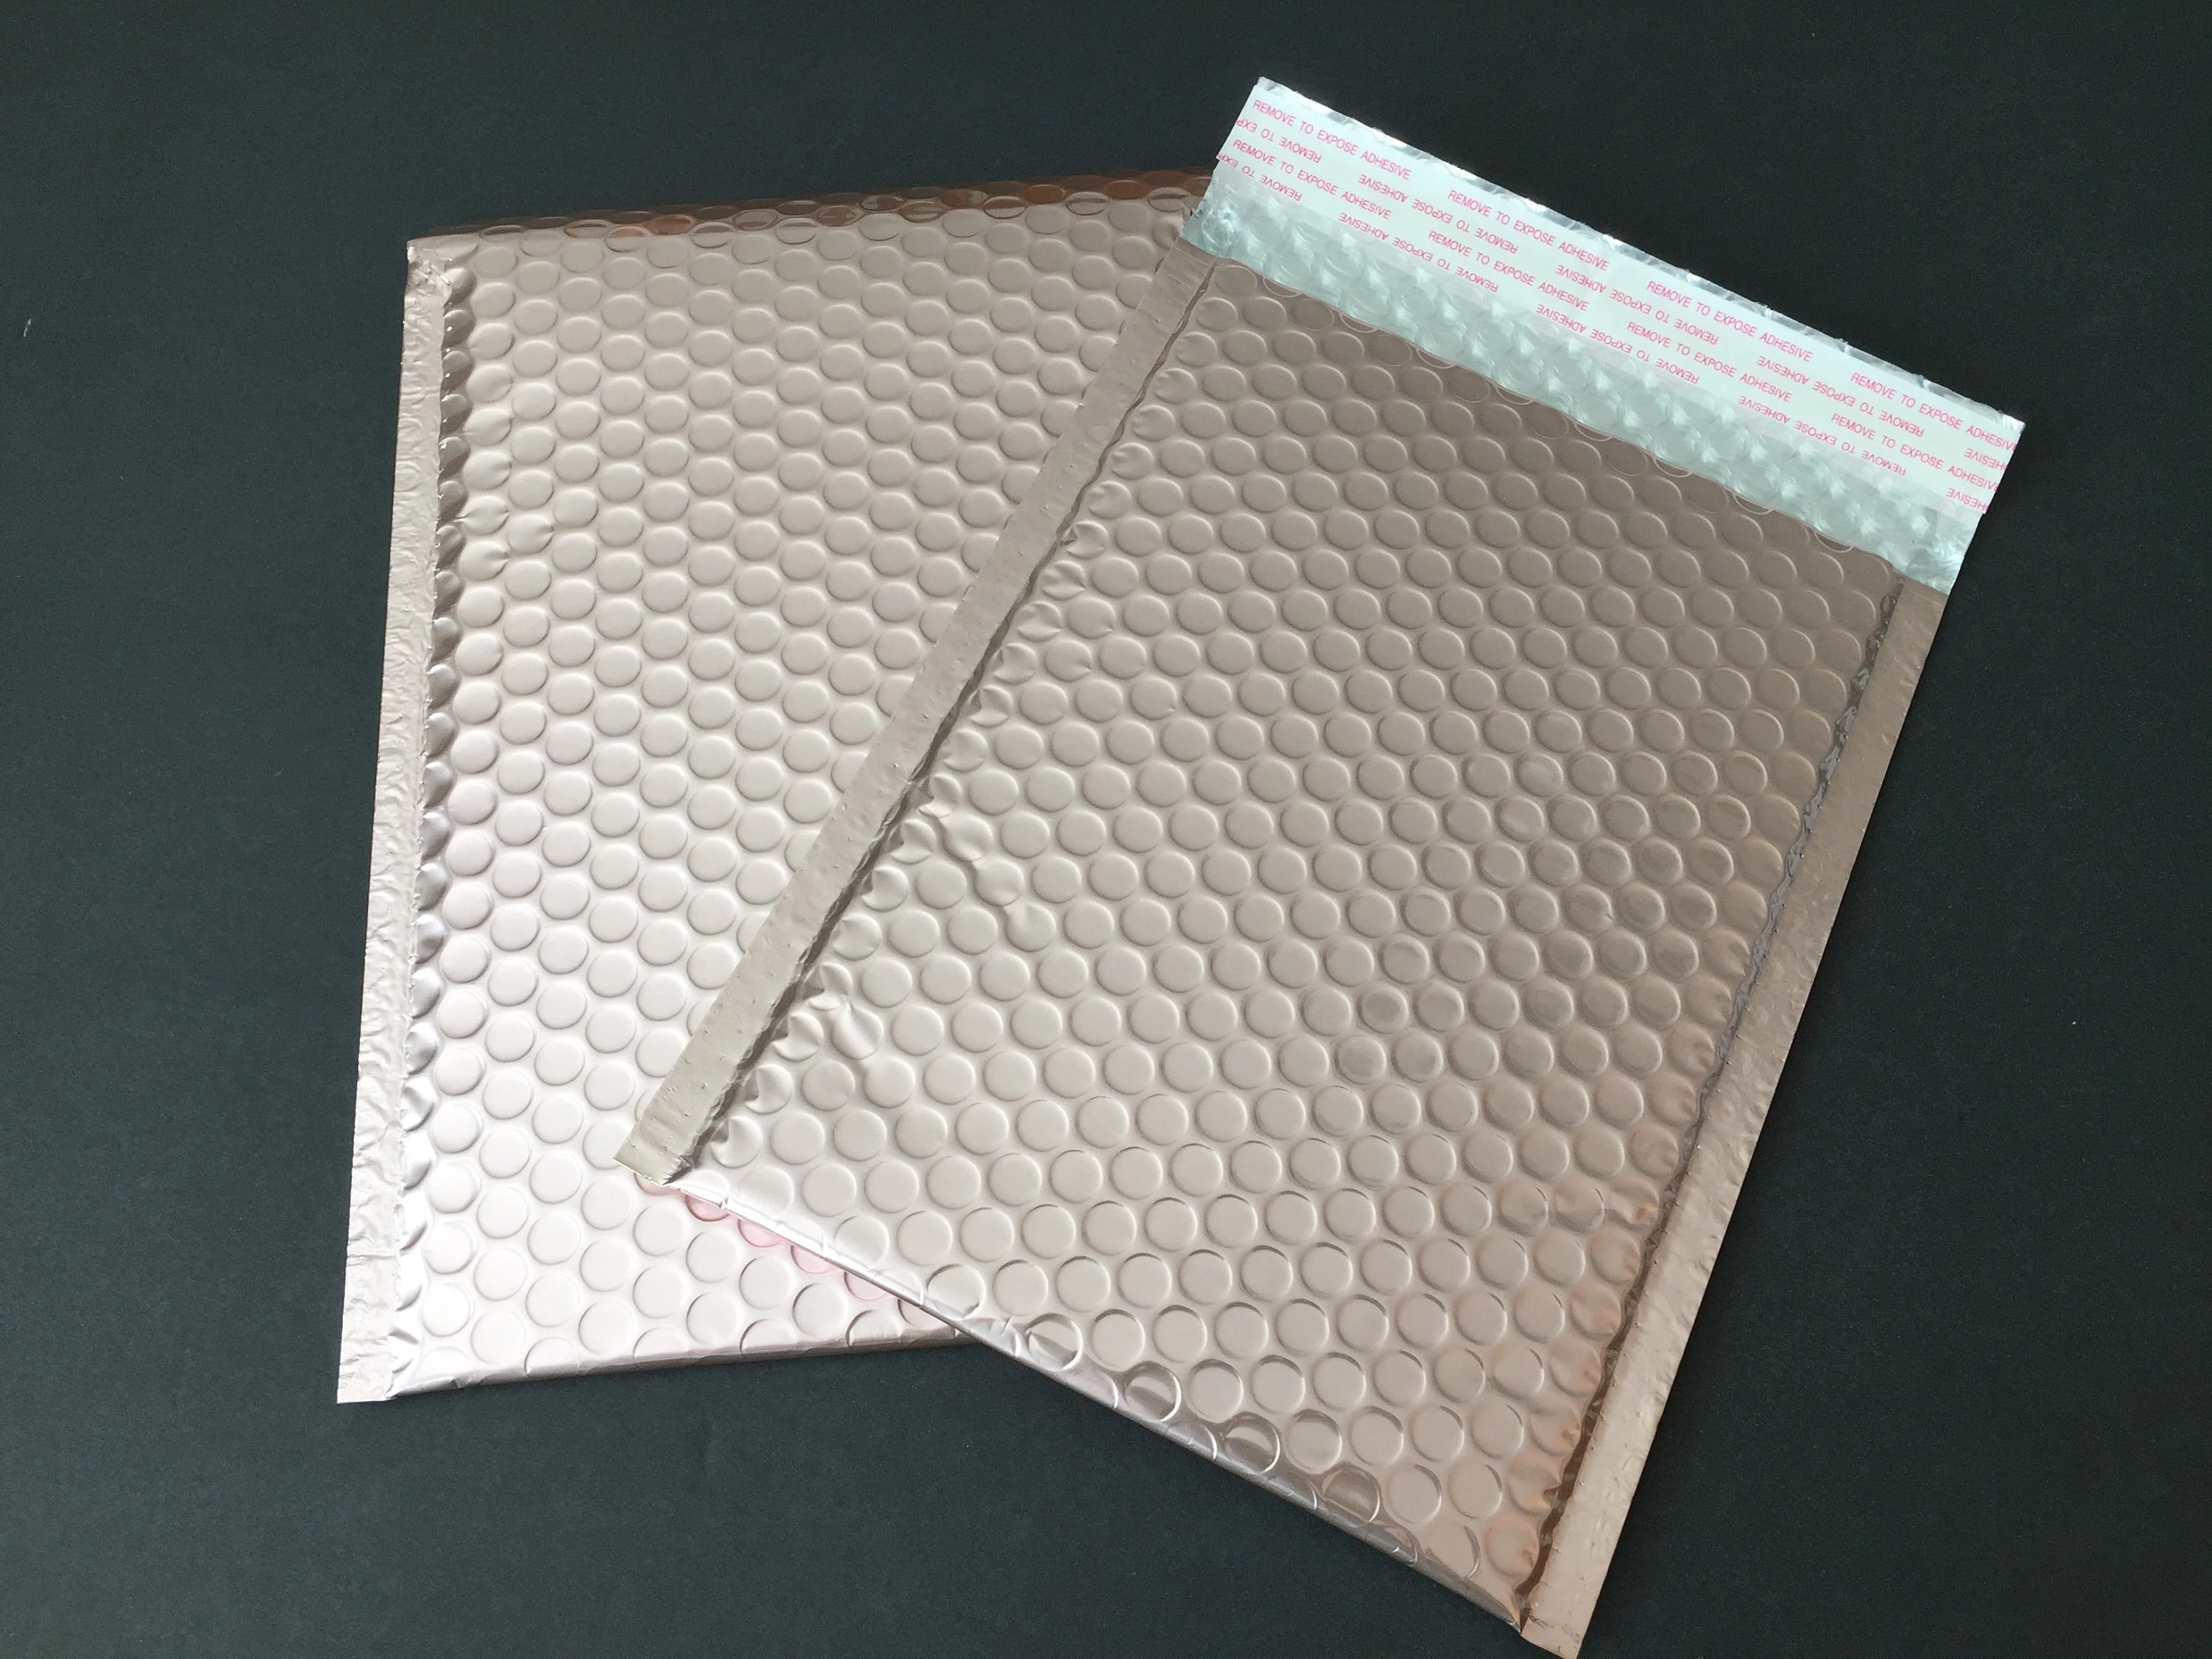 20 6x9 ROSE GOLD Poly Bubble Mailers Size 0 Self Sealing Etsy